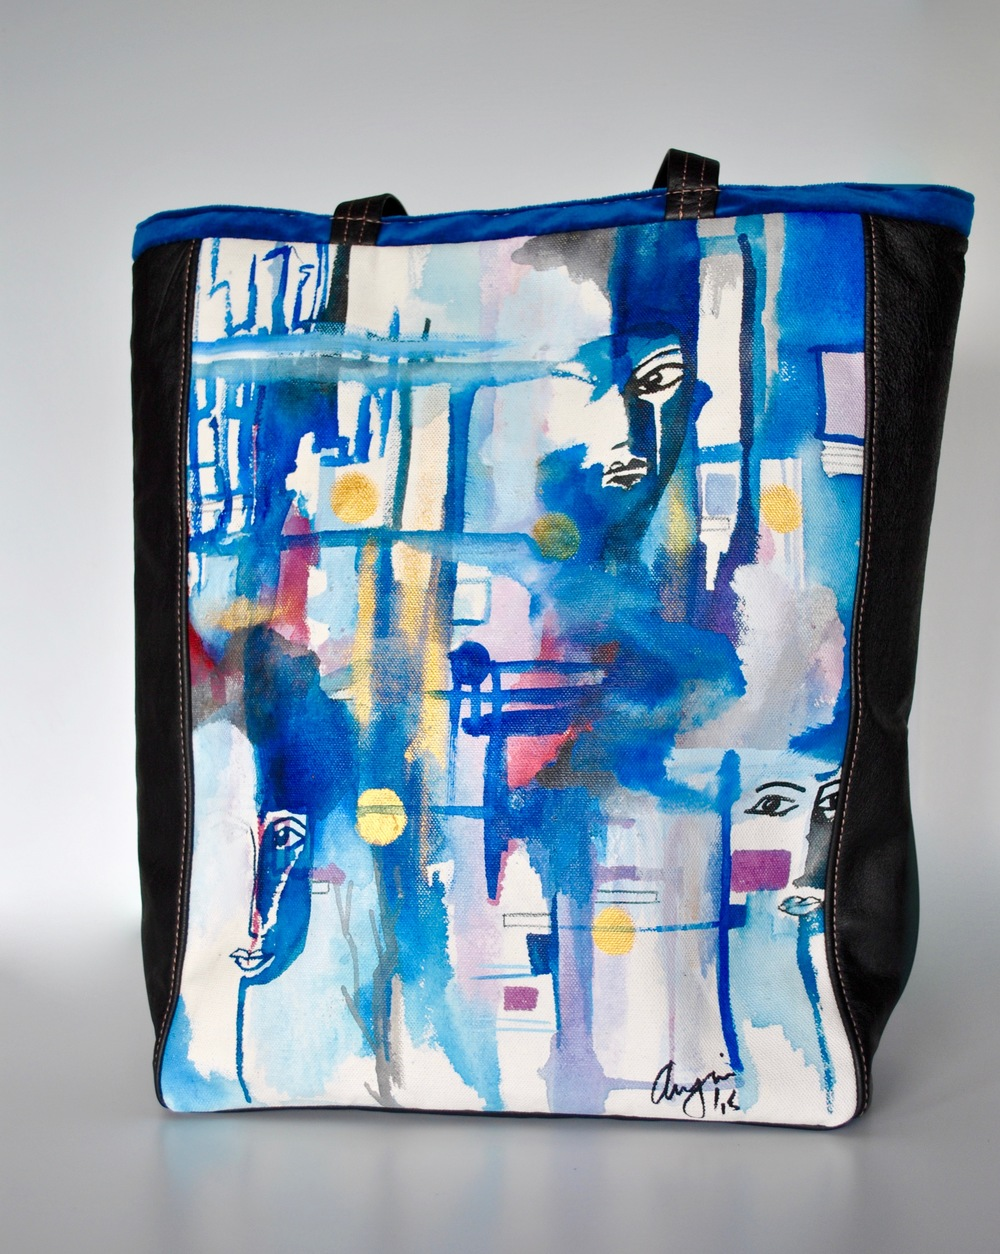 Blue Eyes Acrylic Painting on Canvas on Large Tote with Leather and Velvet.